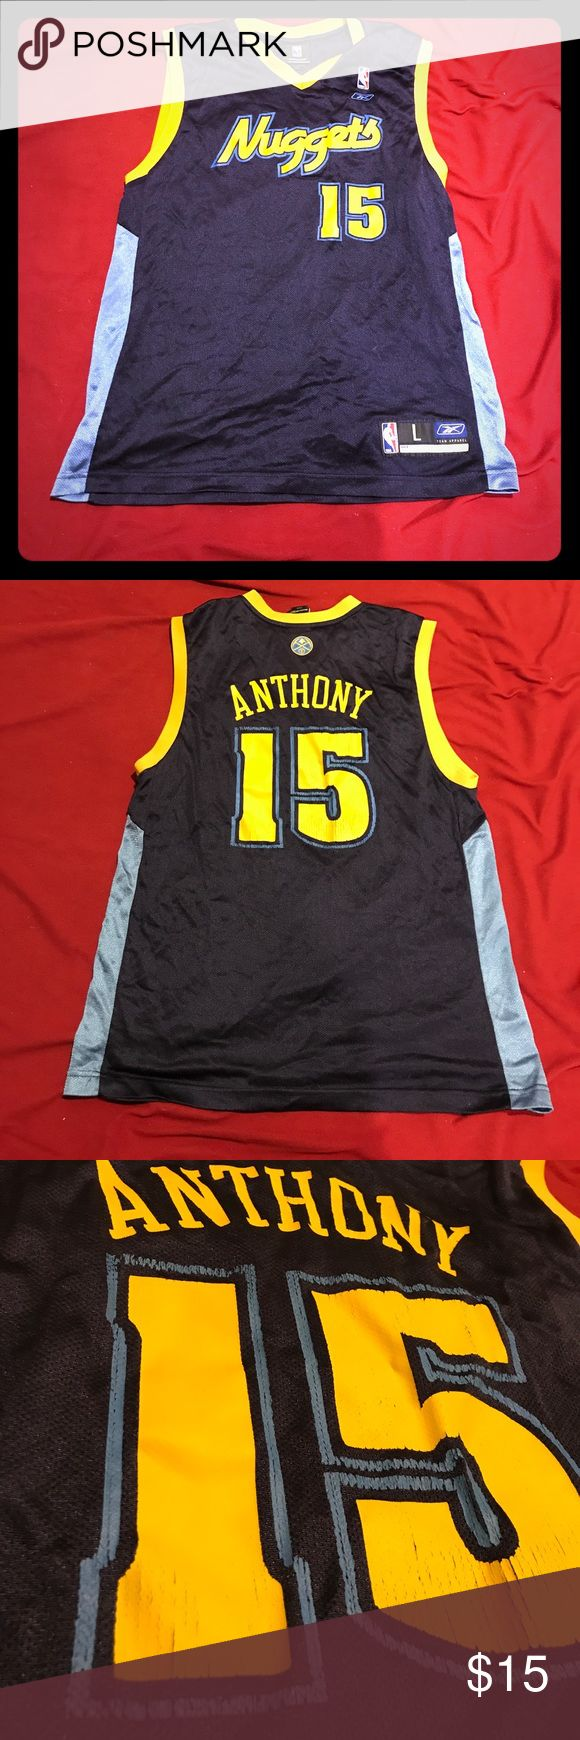 NBA Reebok Carmelo Anthony Jersey Good condition! Little beat. Still in great shape for its age😃 Reebok Other